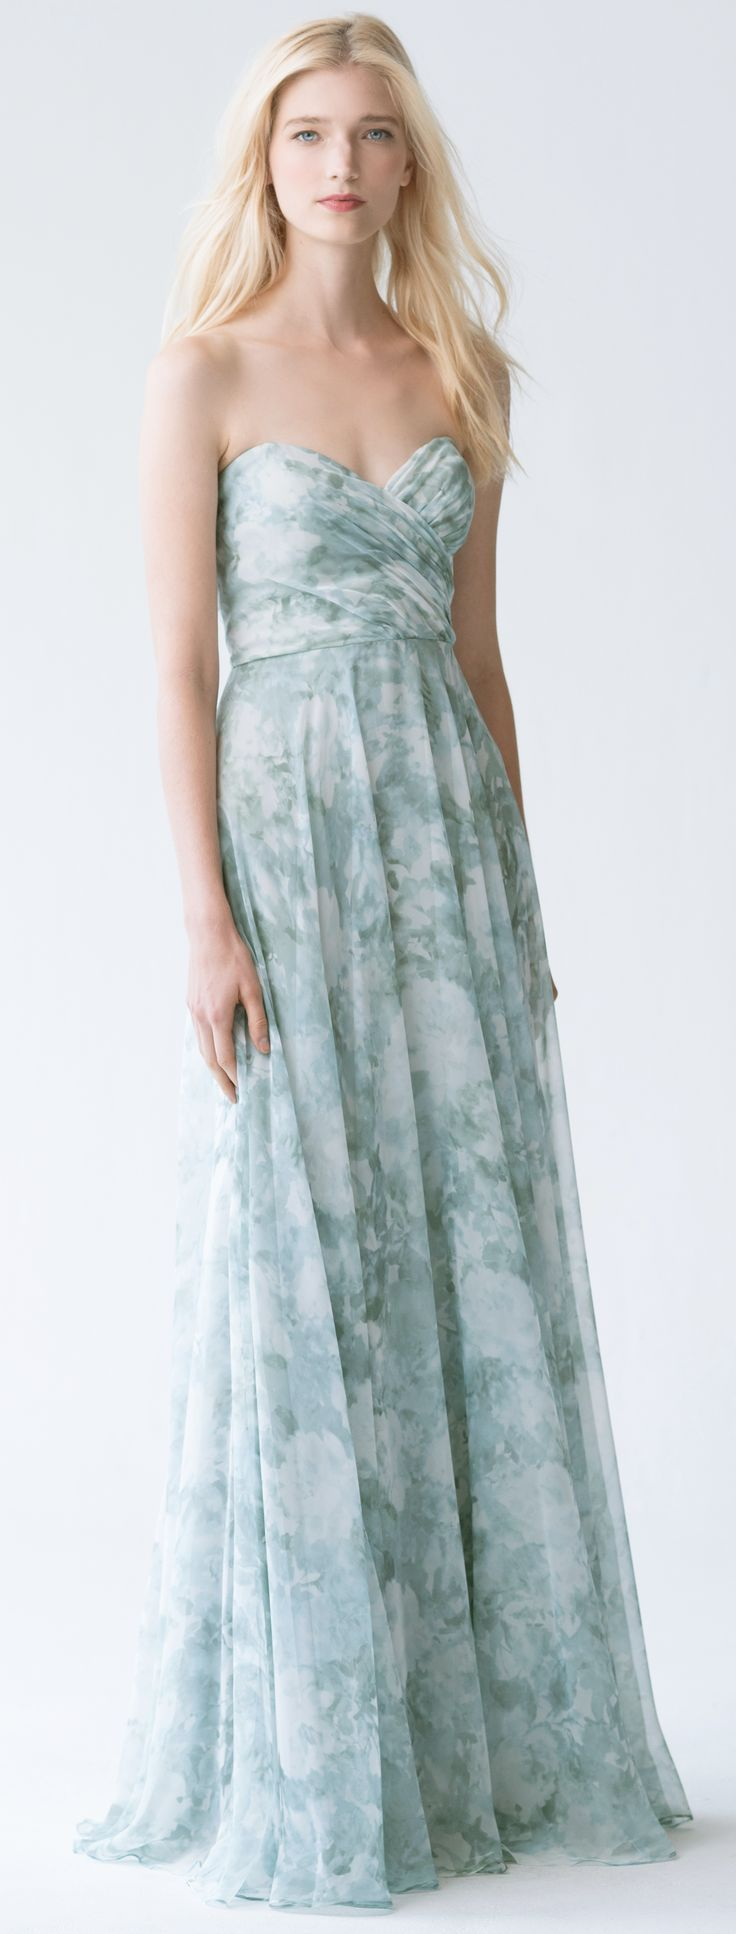 47 best 2017 bridesmaid collection images on pinterest adeline dress in mist multi watercolor garden by jenny yoo ombrellifo Choice Image